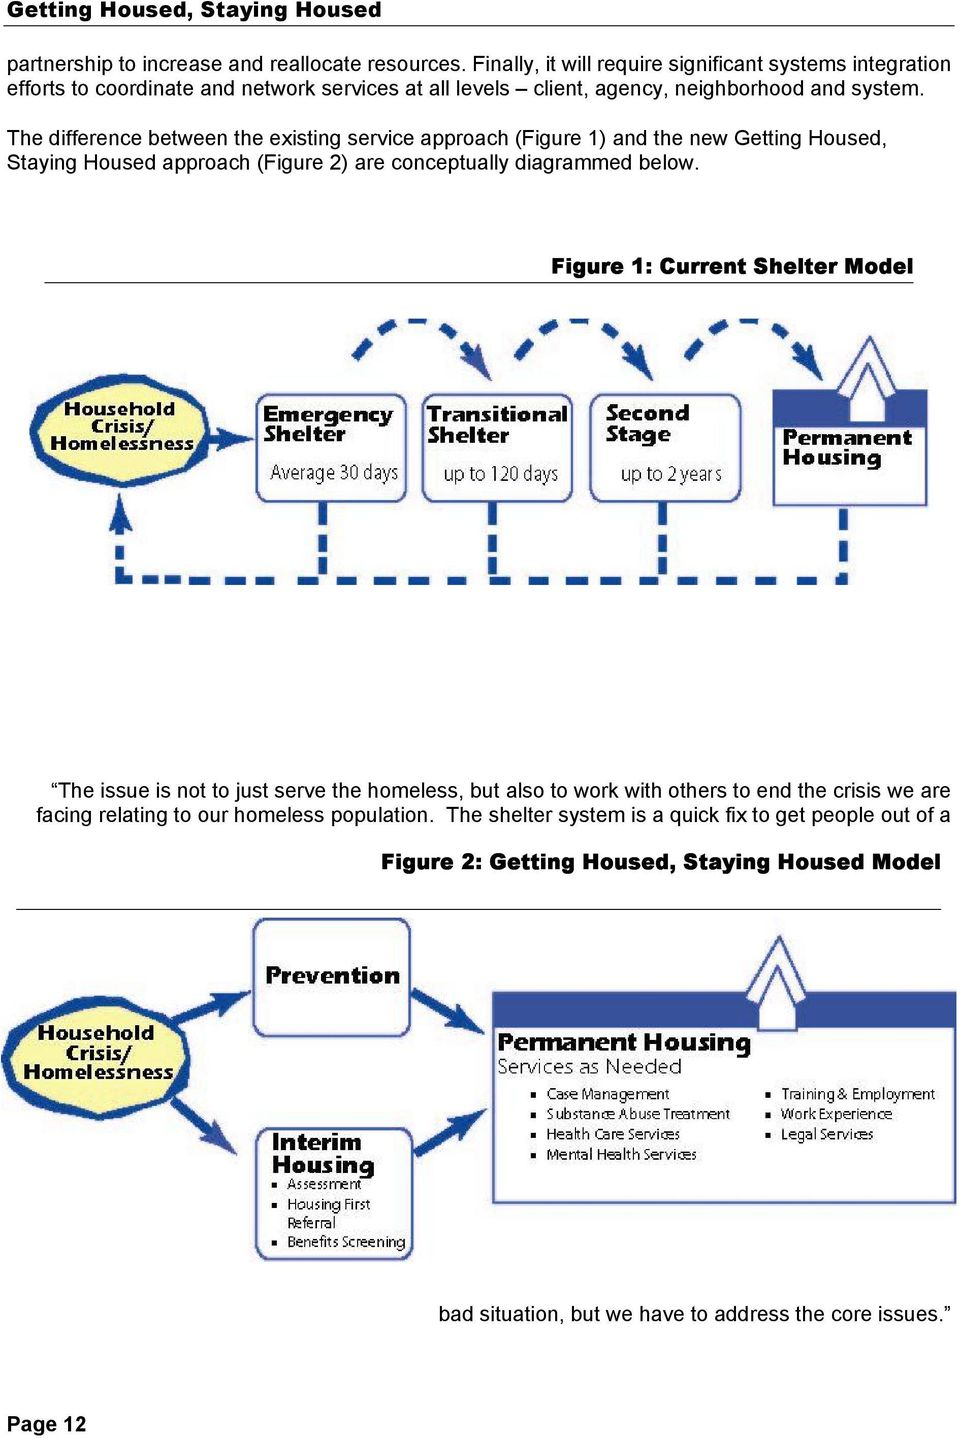 The difference between the existing service approach (Figure 1) and the new Getting Housed, Staying Housed approach (Figure 2) are conceptually diagrammed below.